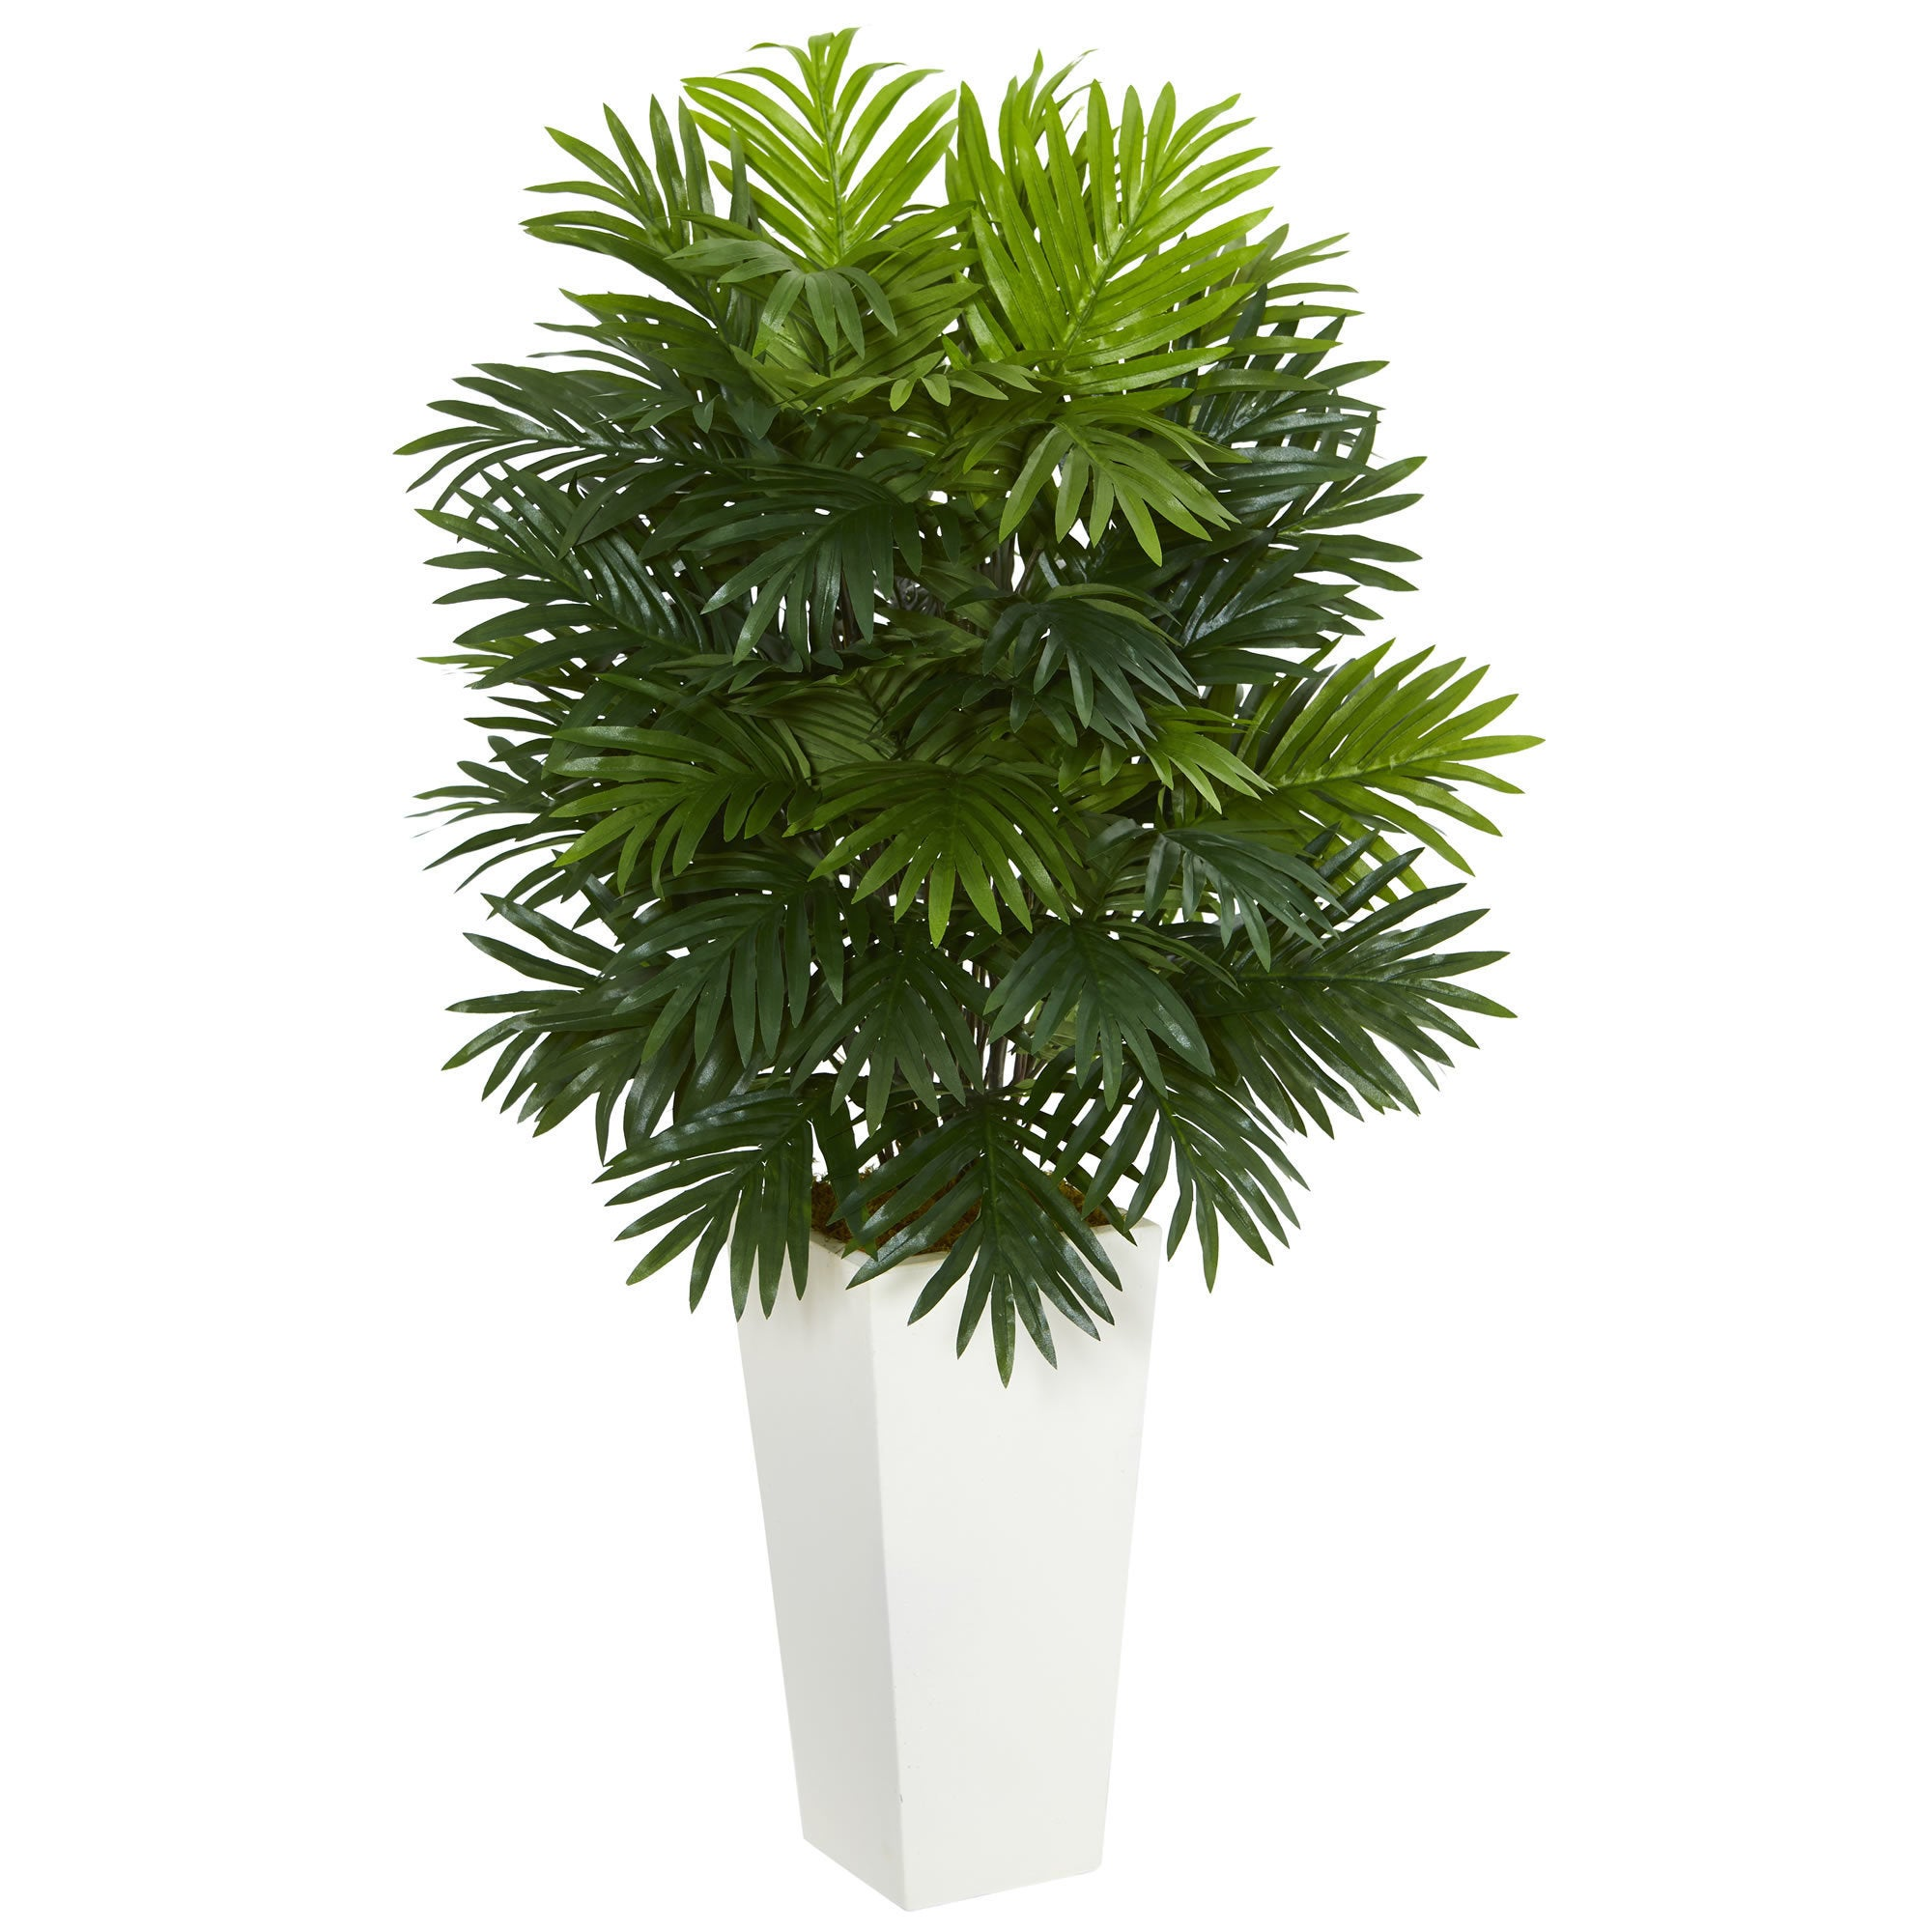 Shop Areca Palm Artificial Plant In White Tower Planter On Sale